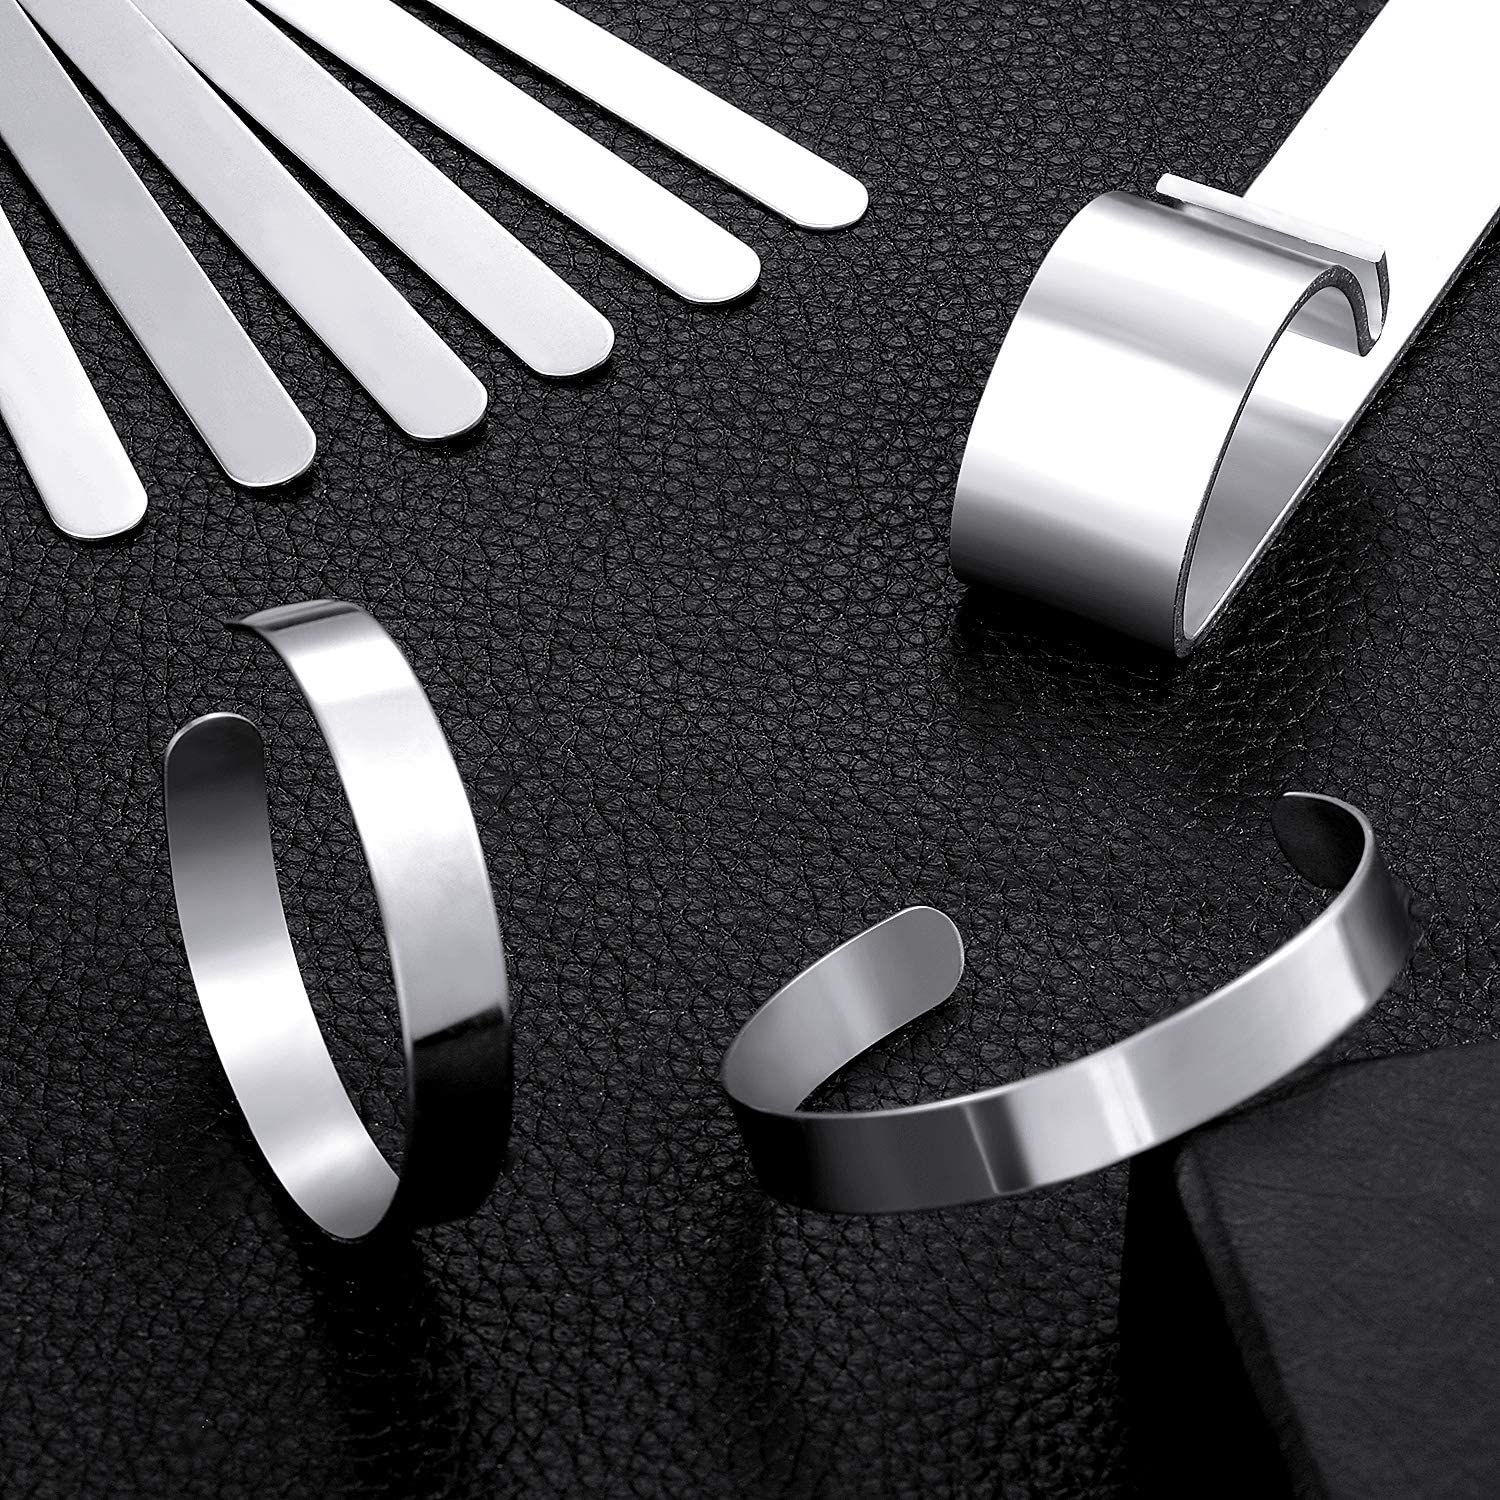 8 Pieces Bracelet Blanks Stainless Steel Blank Bracelet Cuff Bangle Bracelet and Bracelet Bending Bar Jewelry Tool for Stamping and DIY Bracelet Jewelry Making